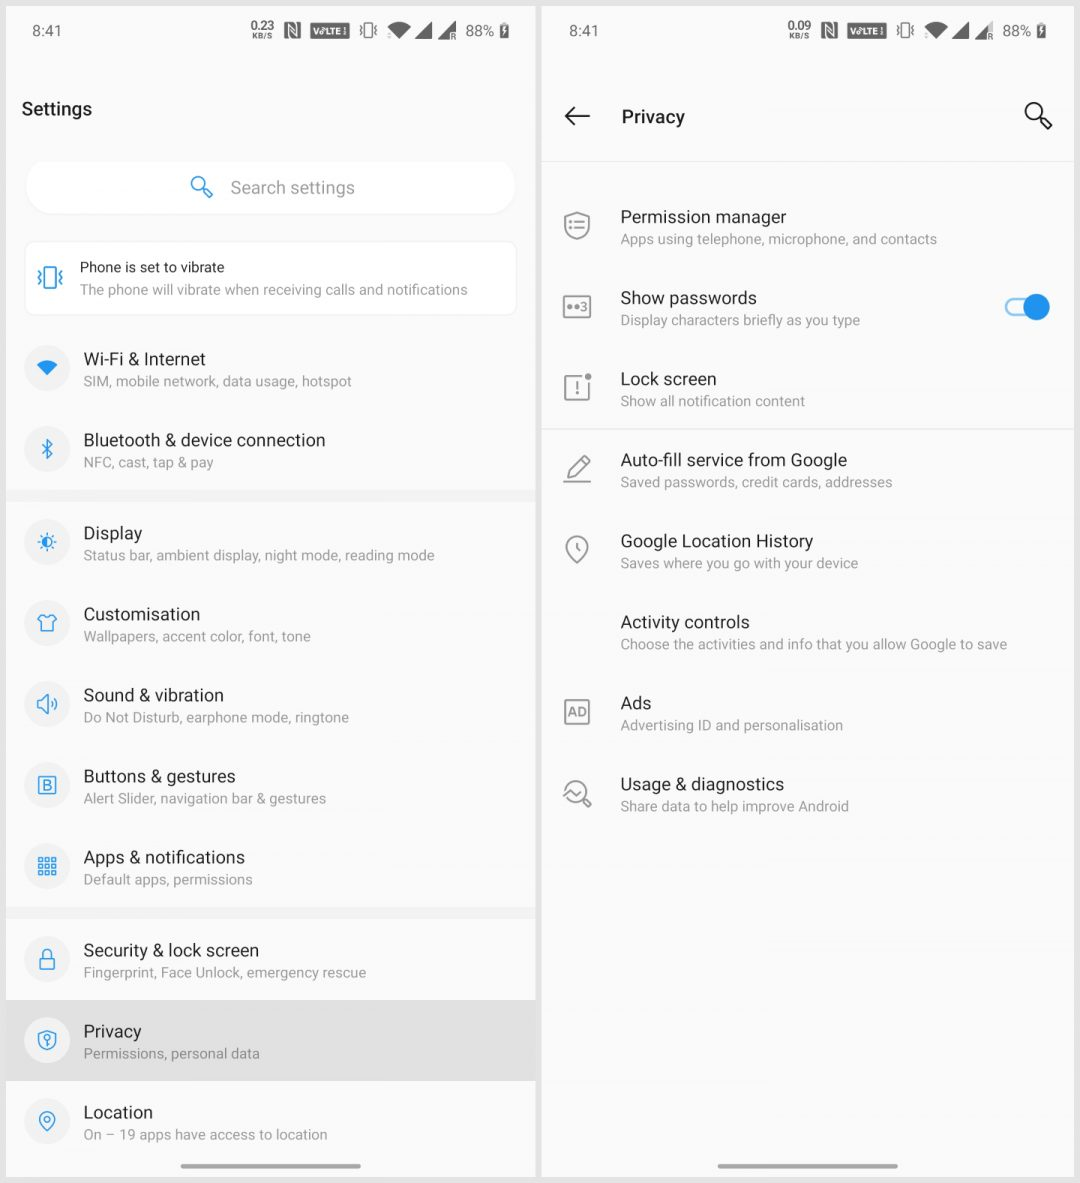 Android 10 privacy controls